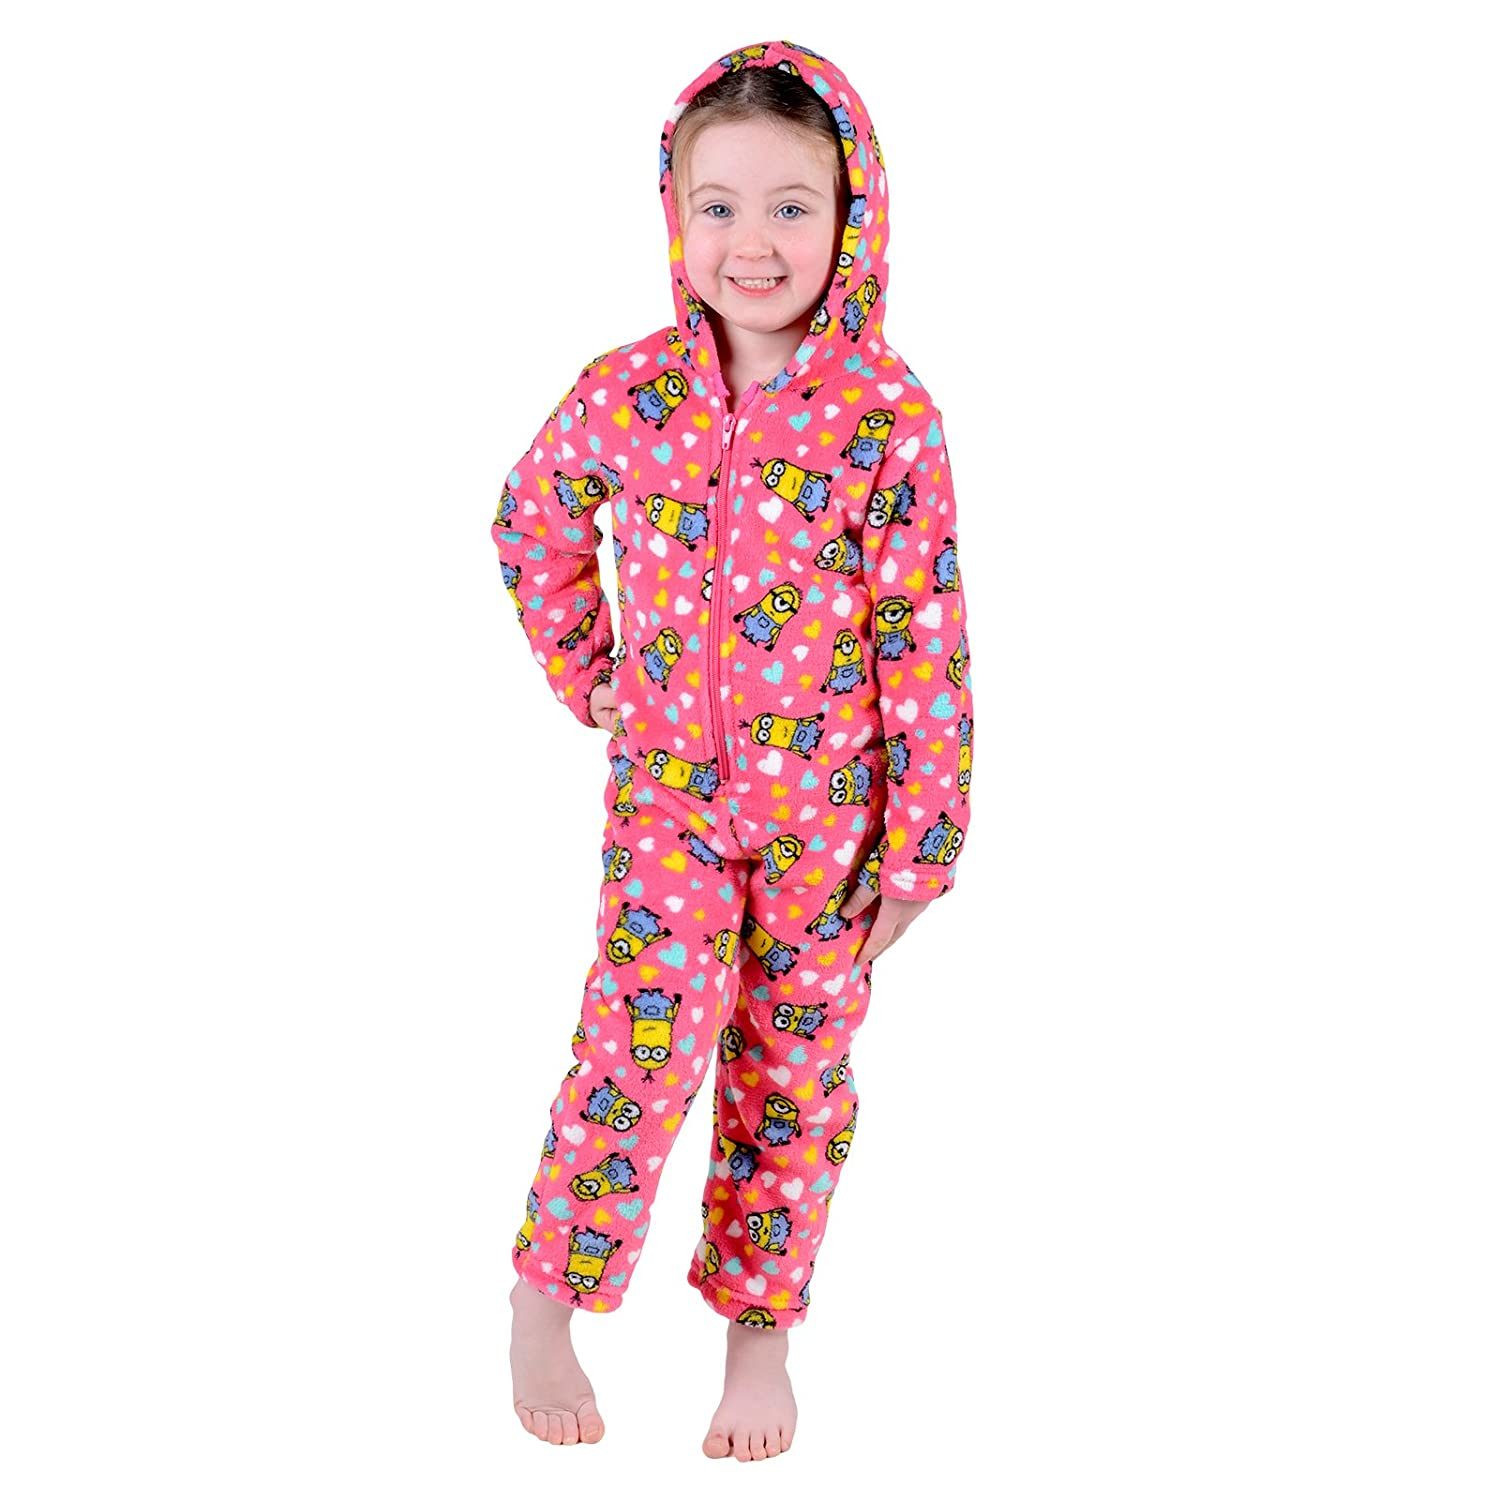 Childrens Girls Pink Despicable Me Minion All In One Pjyama PJs Nightwear Onesie